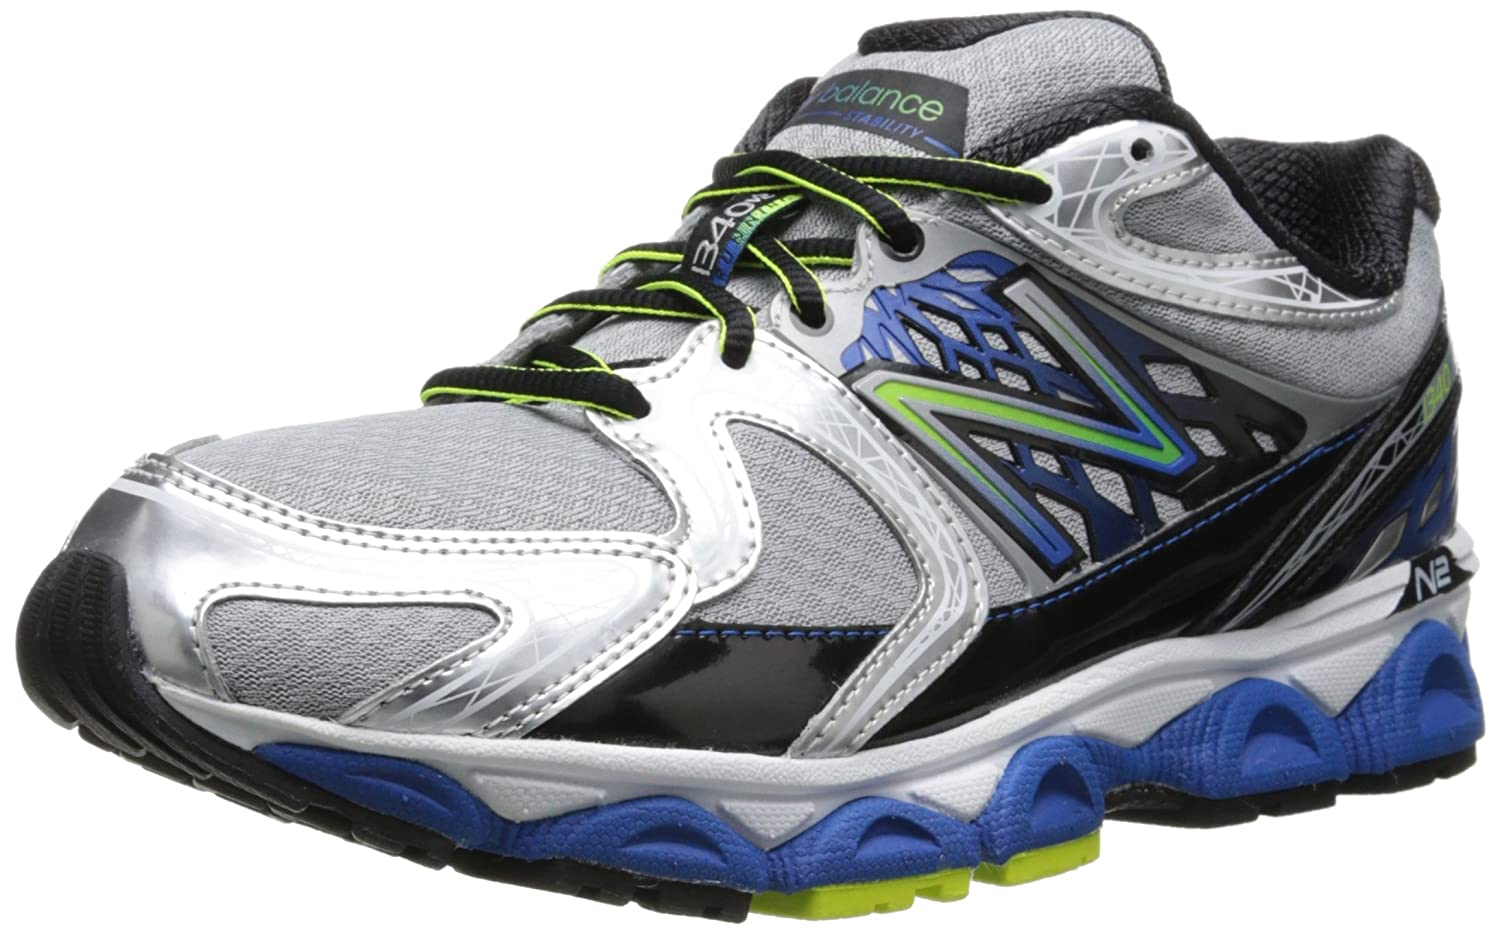 New Balance Men's M1340 Optimal Control Running Shoe B00GY2C76S 8 D(M) US|Blue/Silver